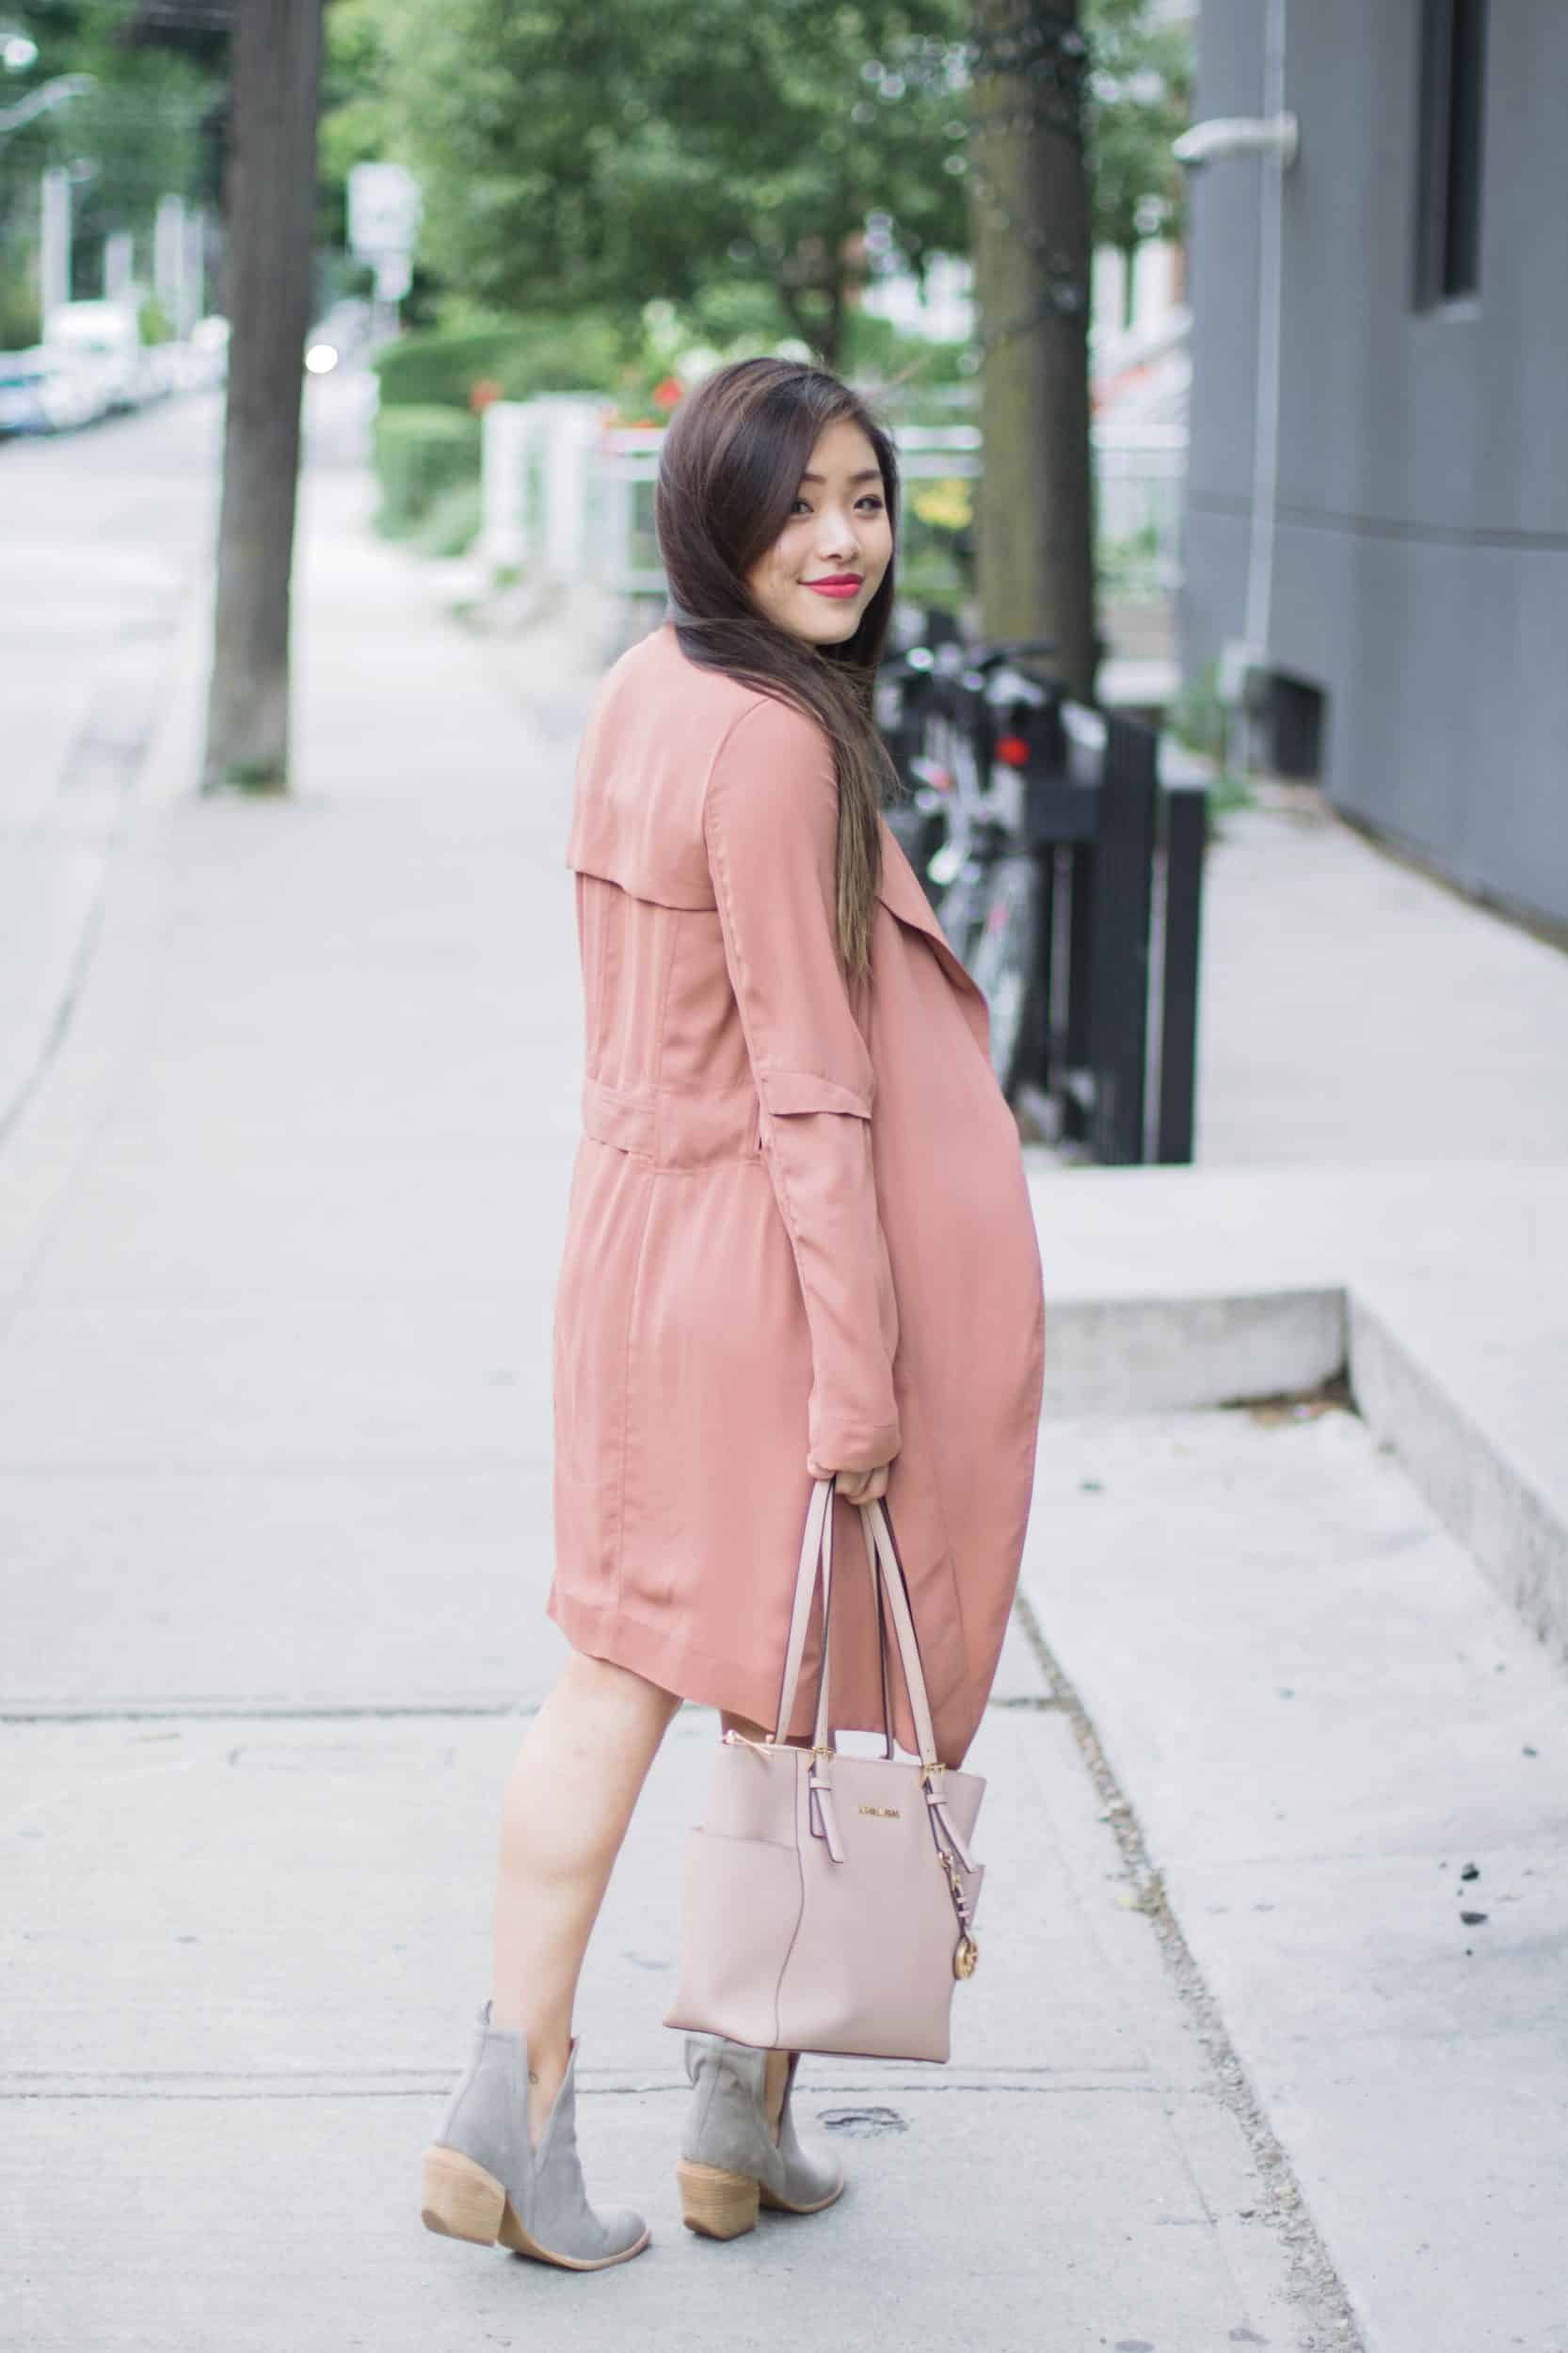 Summer outfit featuring Aritzia pink trench coat, Jeffrey Campbell grey suede booties, and nude Michael Kors bag